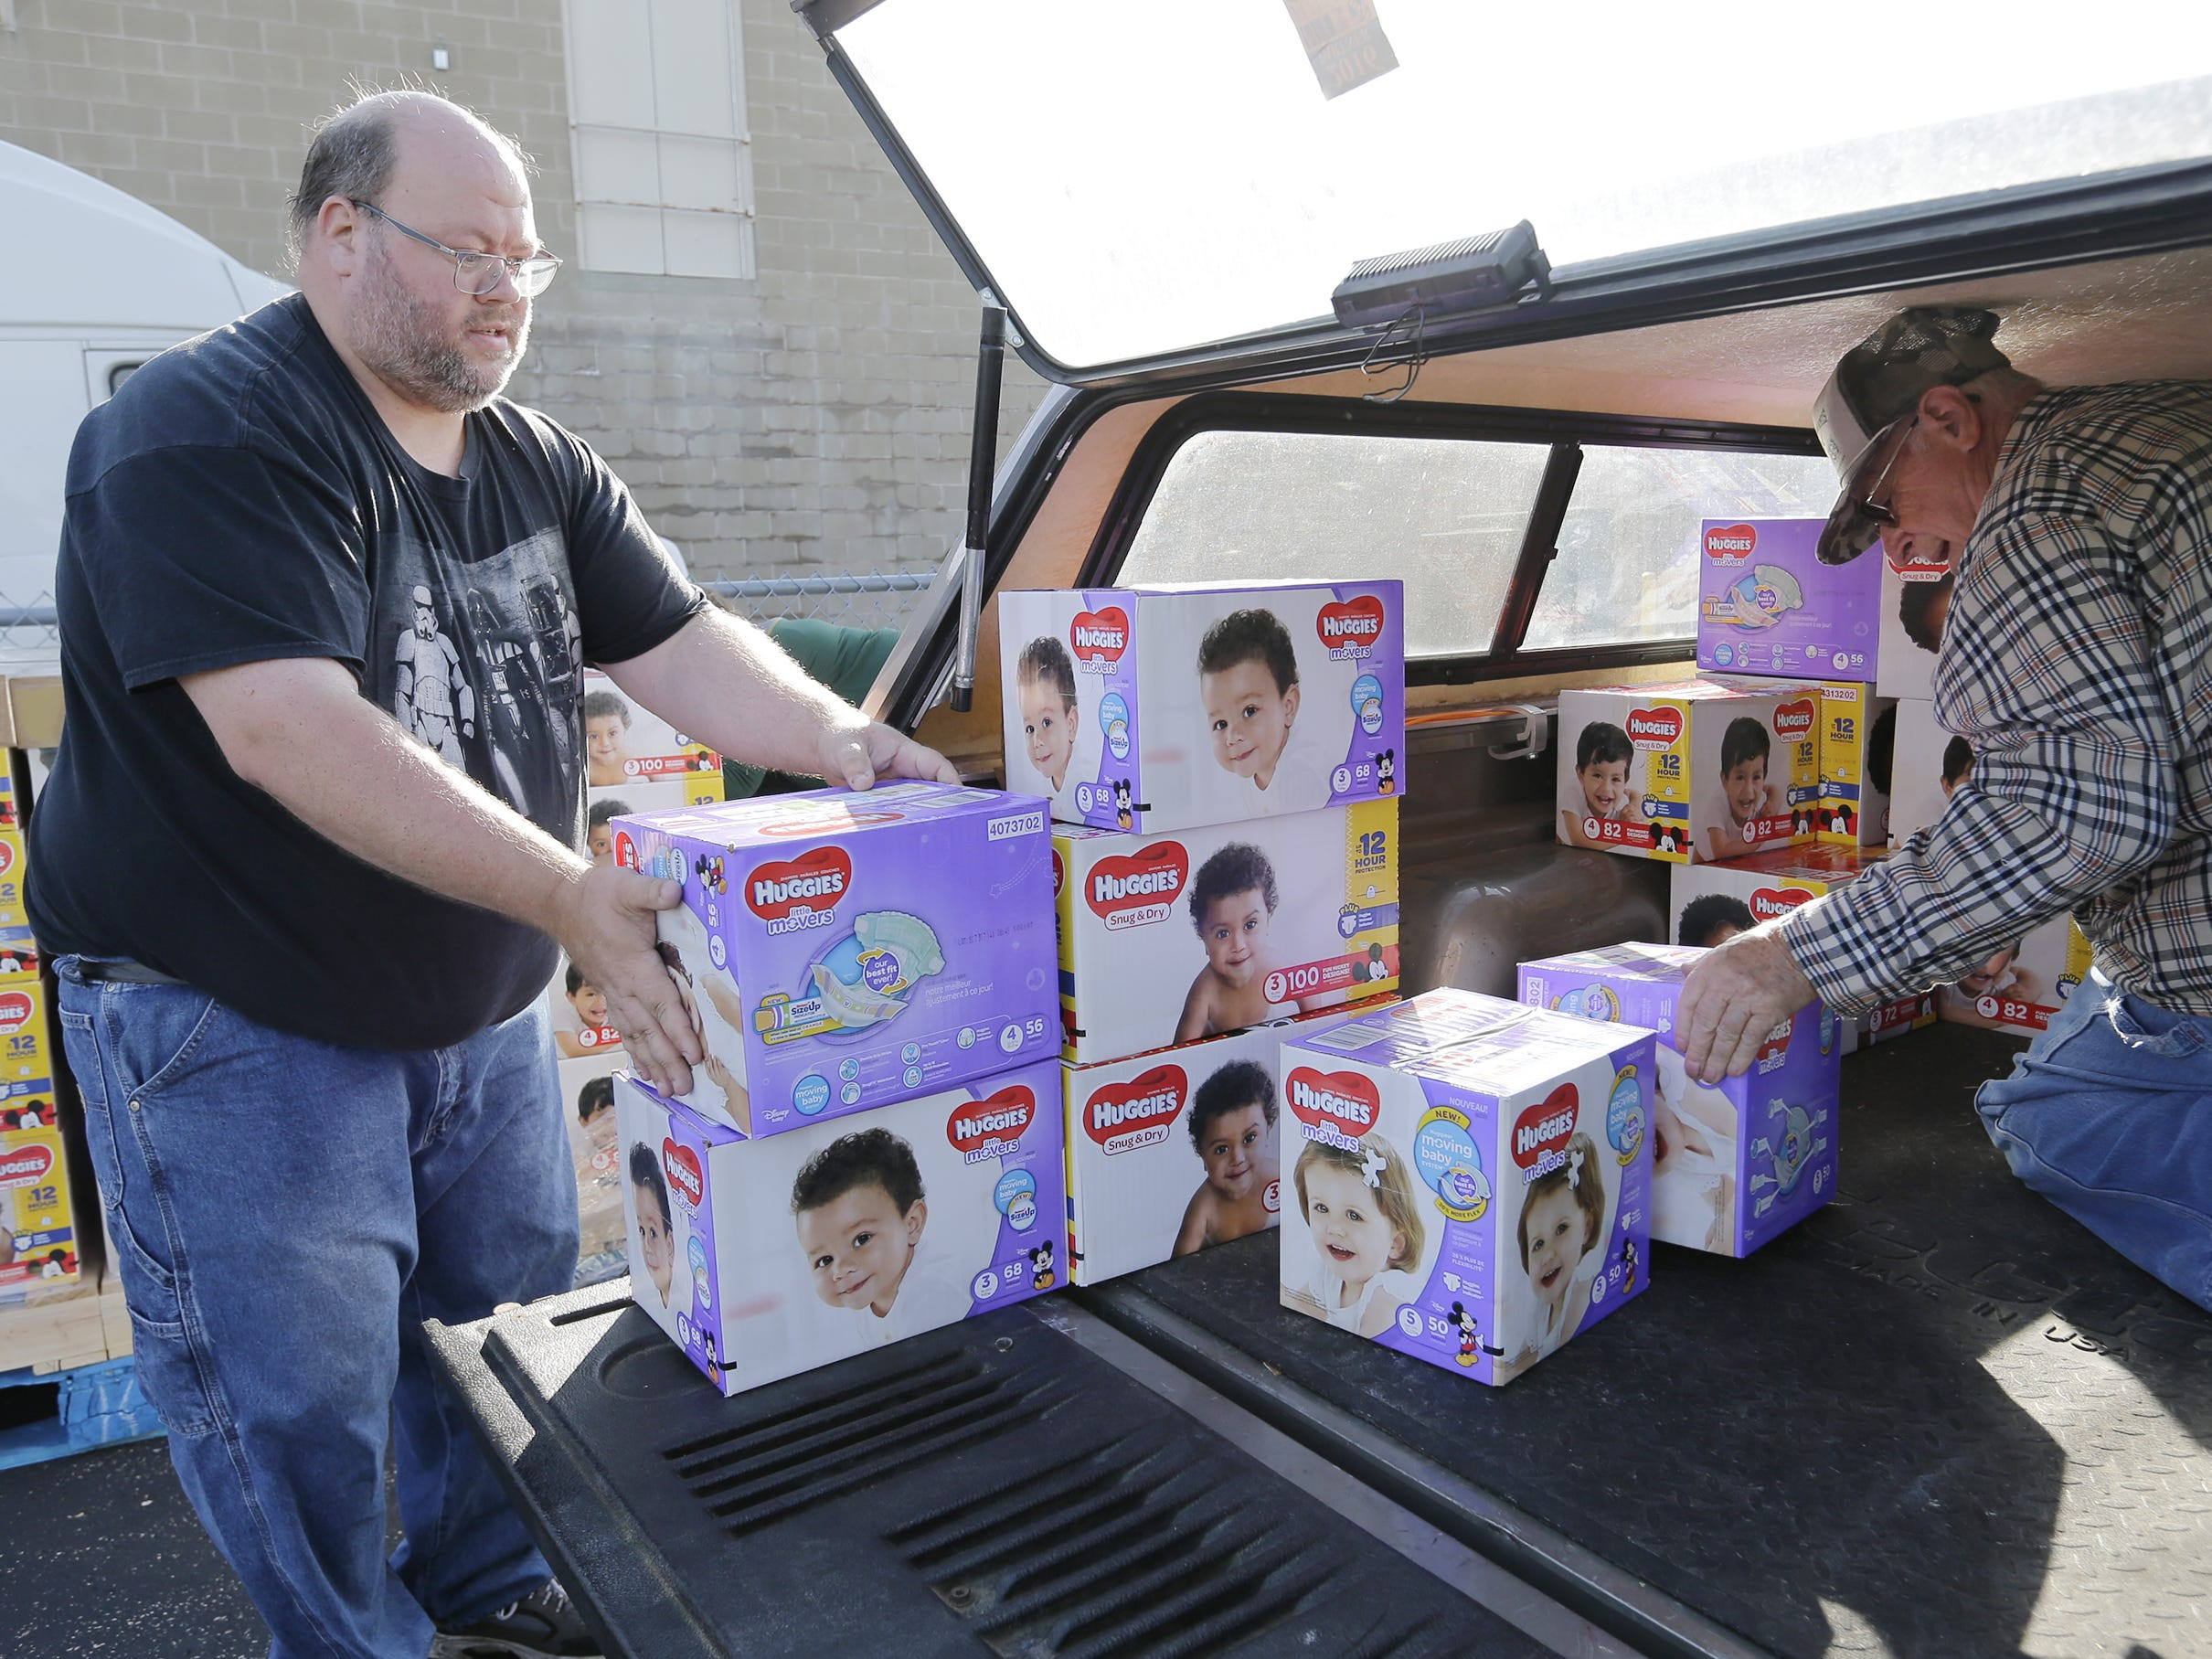 Chris Boelter, a volunteer with the Oshkosh Area Community Food Pantry, helps Bill Joch of the Omro Community Food Pantry load his vehicle with the diapers Monday, Sept. 24, 2018, in Oshkosh. USA TODAY NETWORK-Wisconsin and Kimberly-Clark Corp. donated 100,400 diapers to nine food pantries in the area.